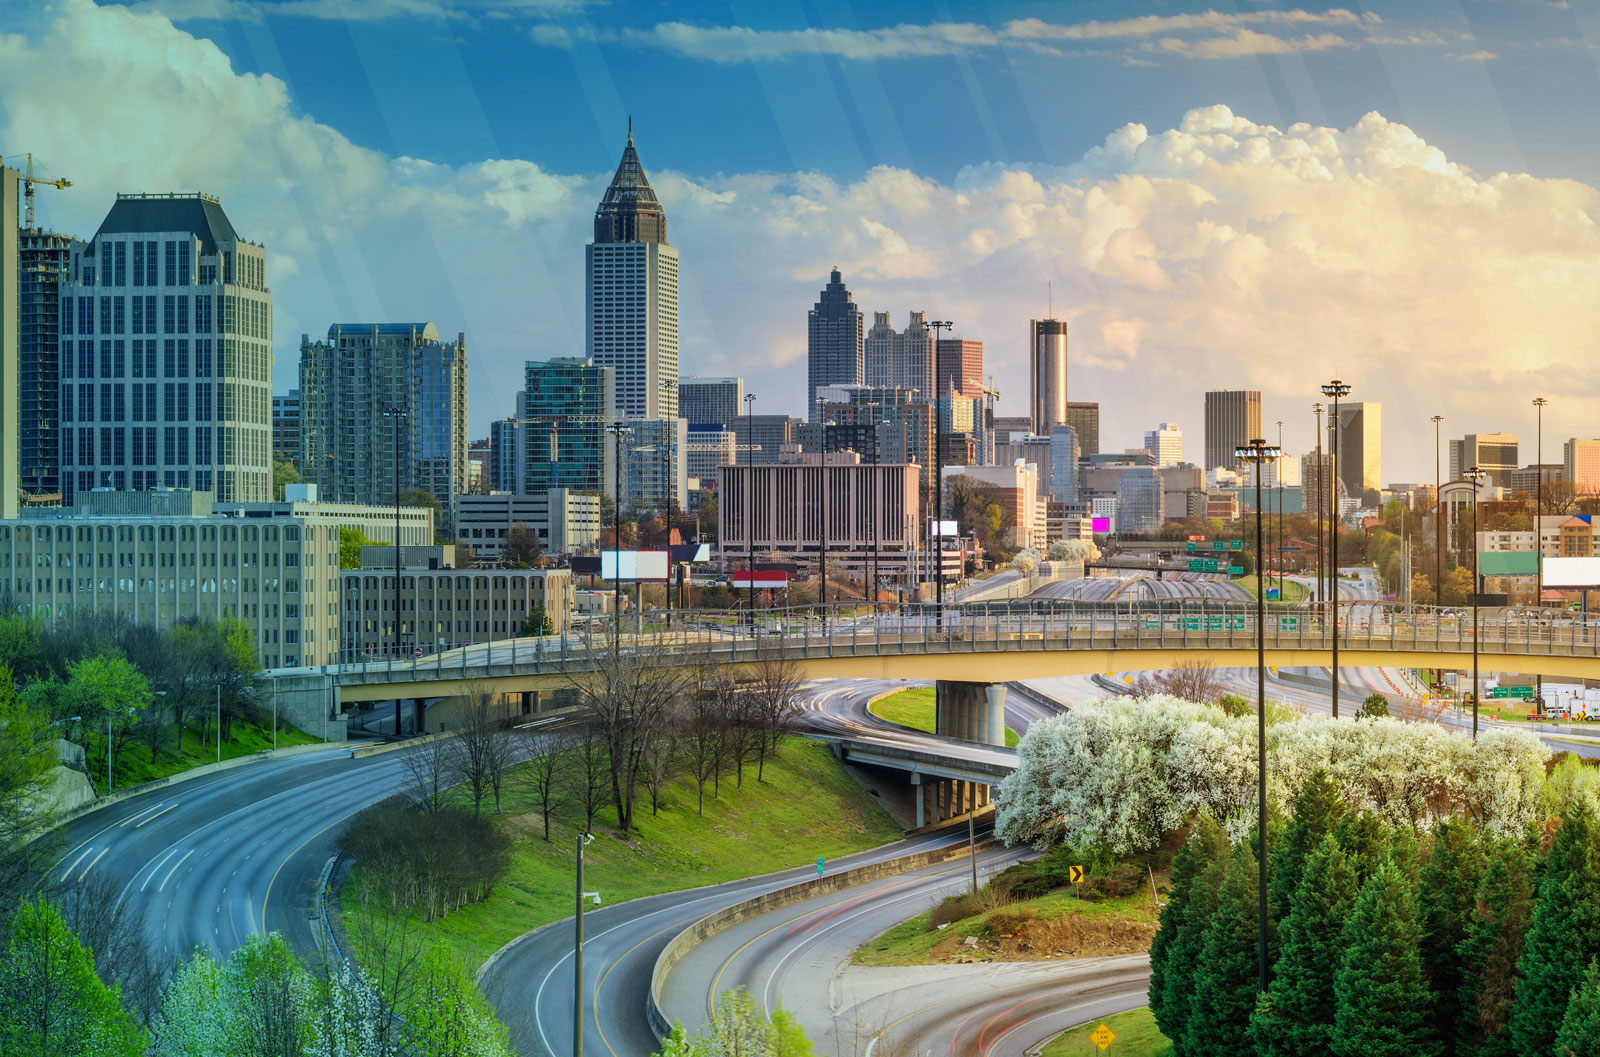 View of the Atlanta, Georgia city skyline with a long-exposure of Interstate 75